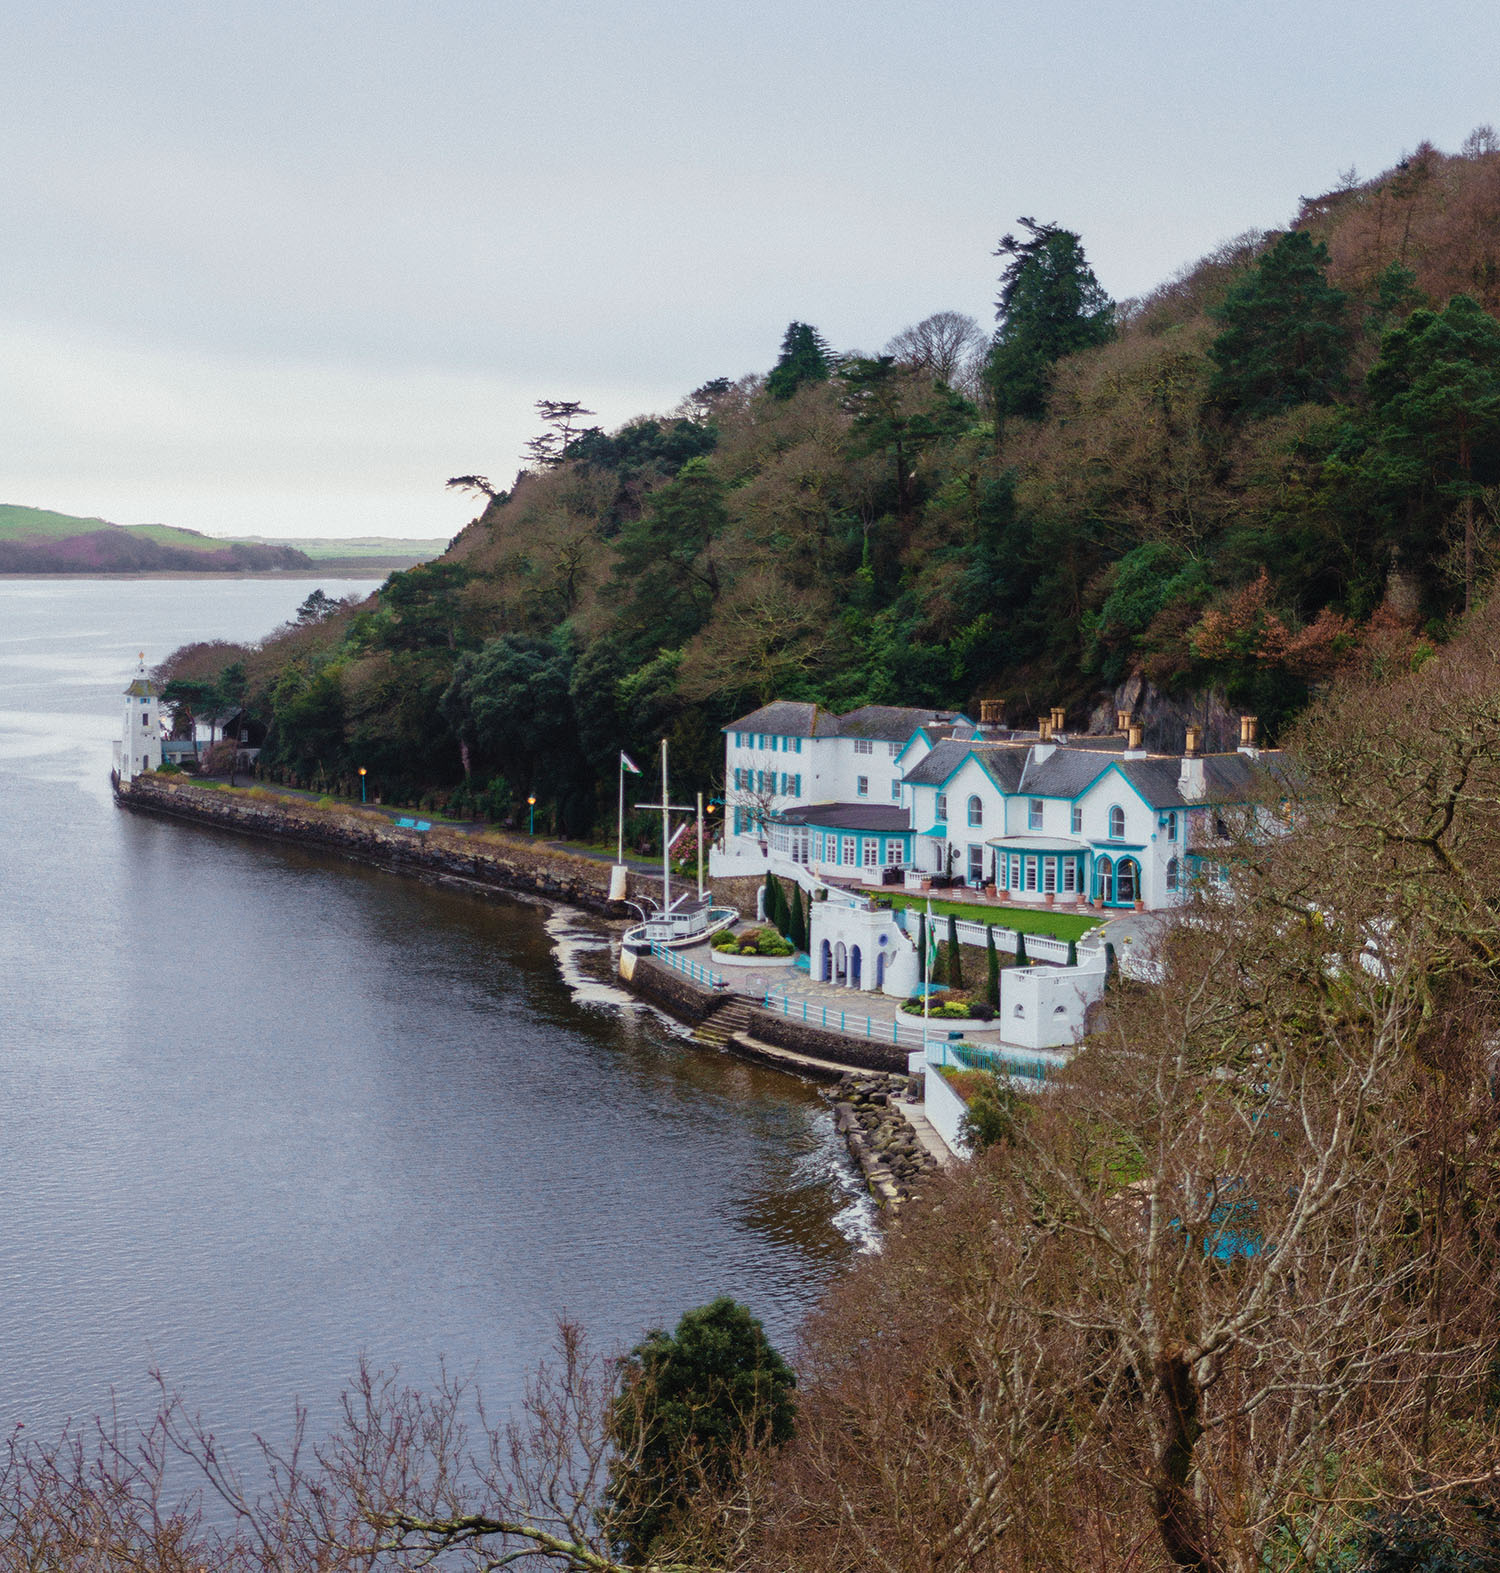 Portmeirion Village in North Wales